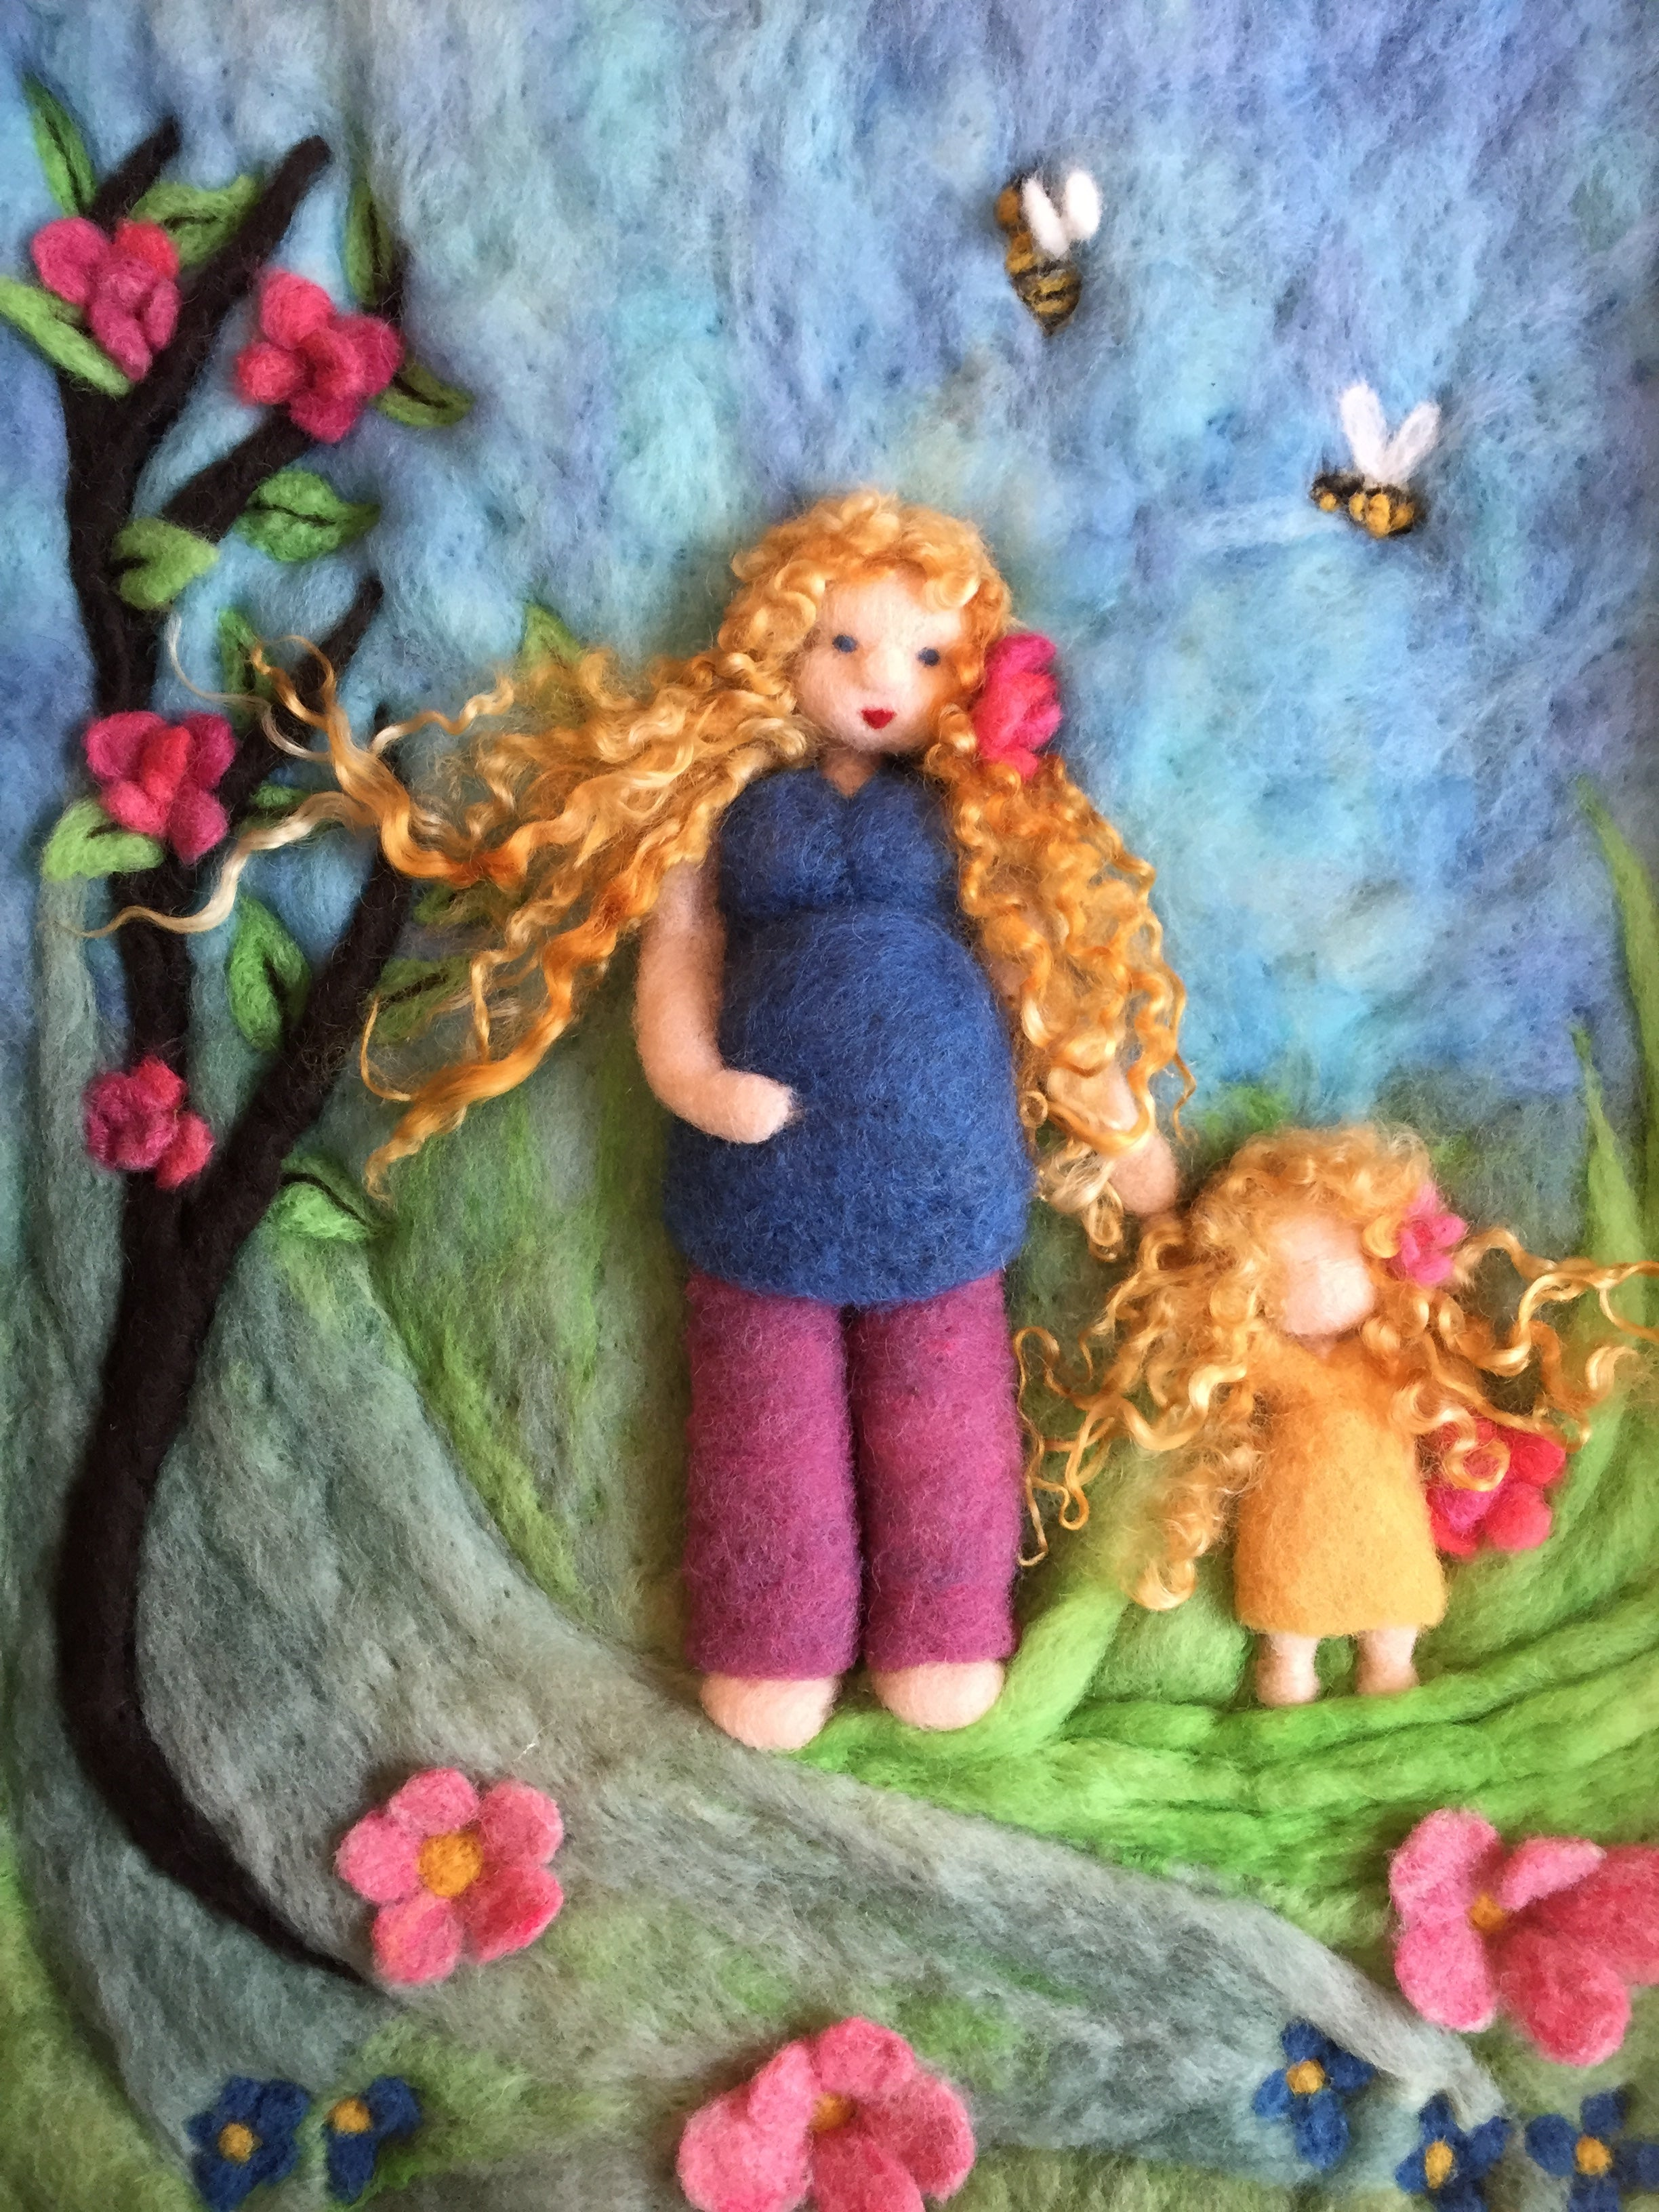 Mother and child, Mother's Day, gift, baby nursery, felted, wall hanging, home decor, felted, wool, wool fiber, 3D felted. fiber art, art, handmade, hand felted, wet felted, needle felted